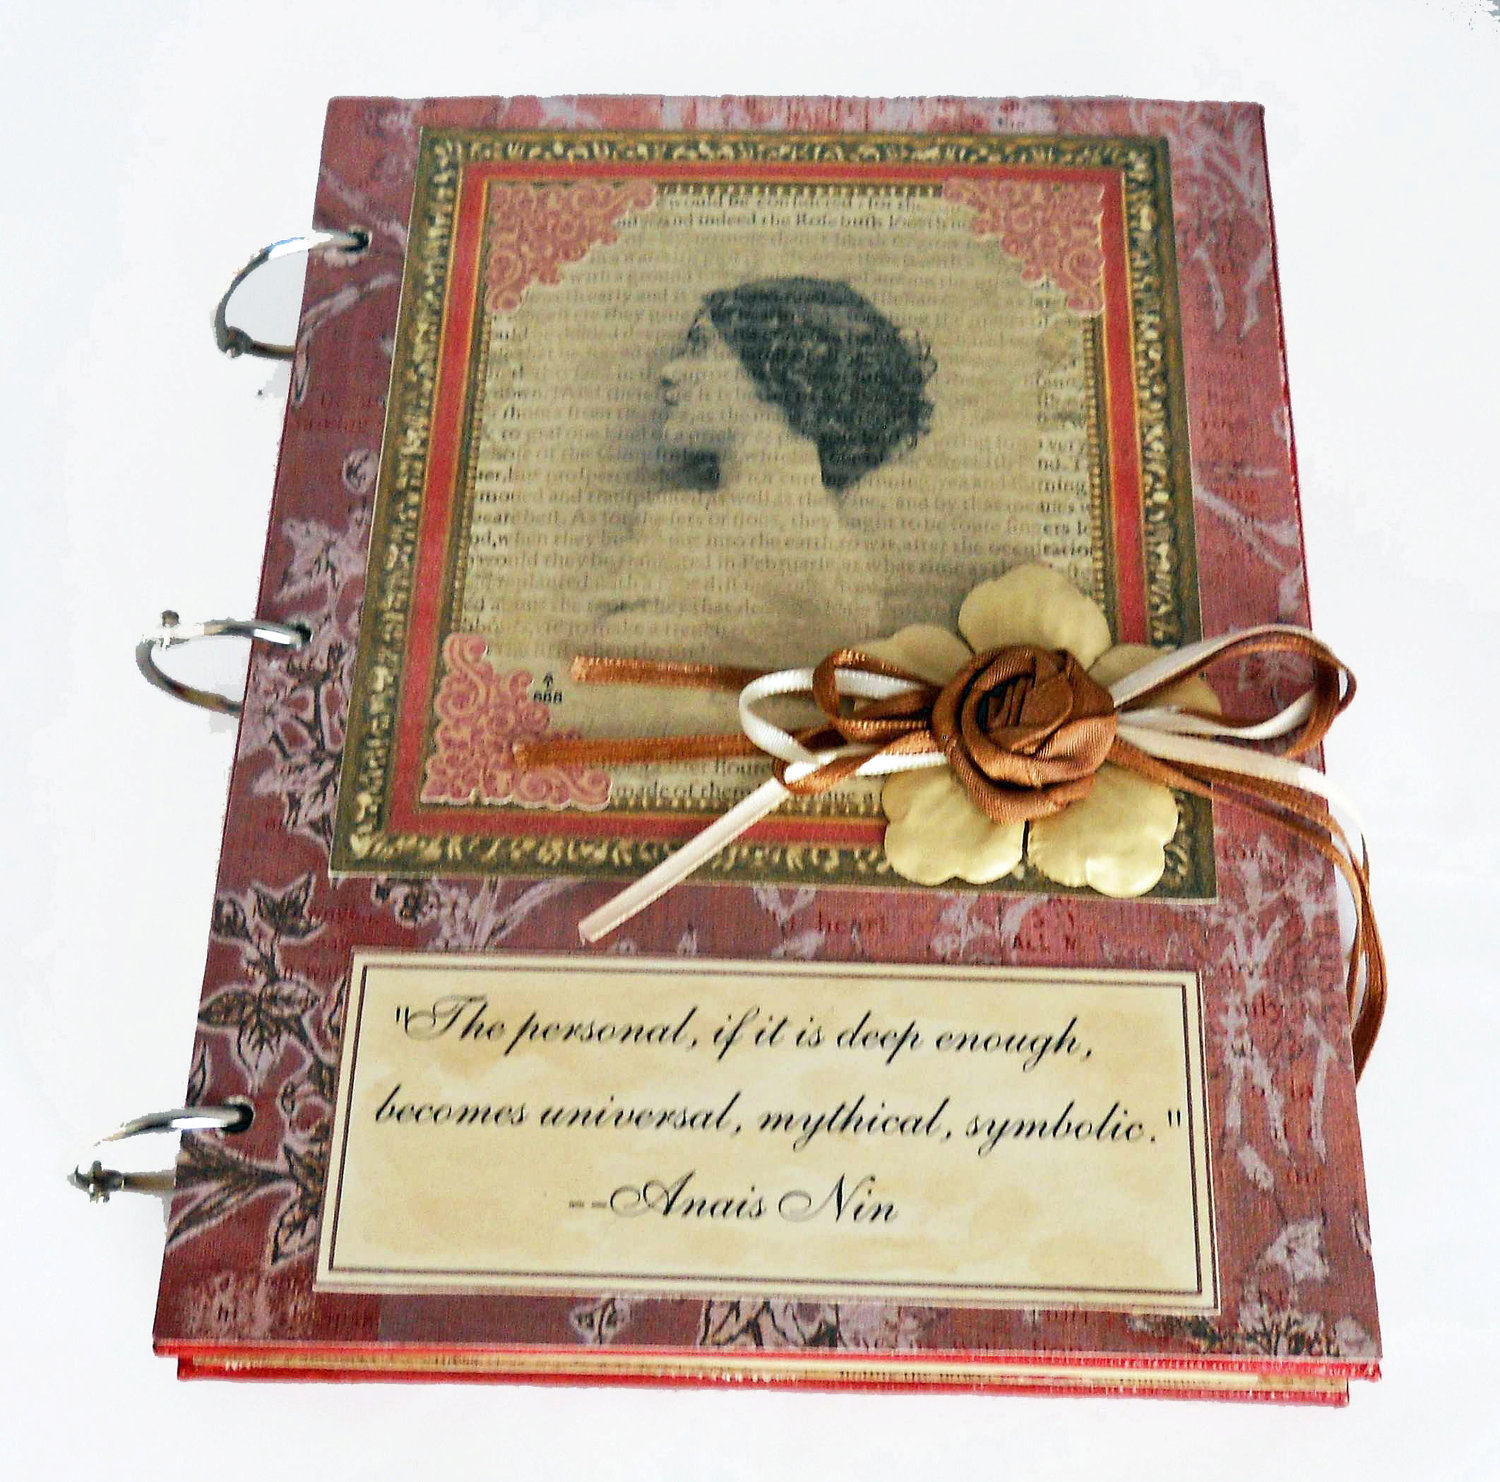 Ophelia S Adornments Blog May 2012: Ophelia's Adornments Blog: Mixed Media Journals